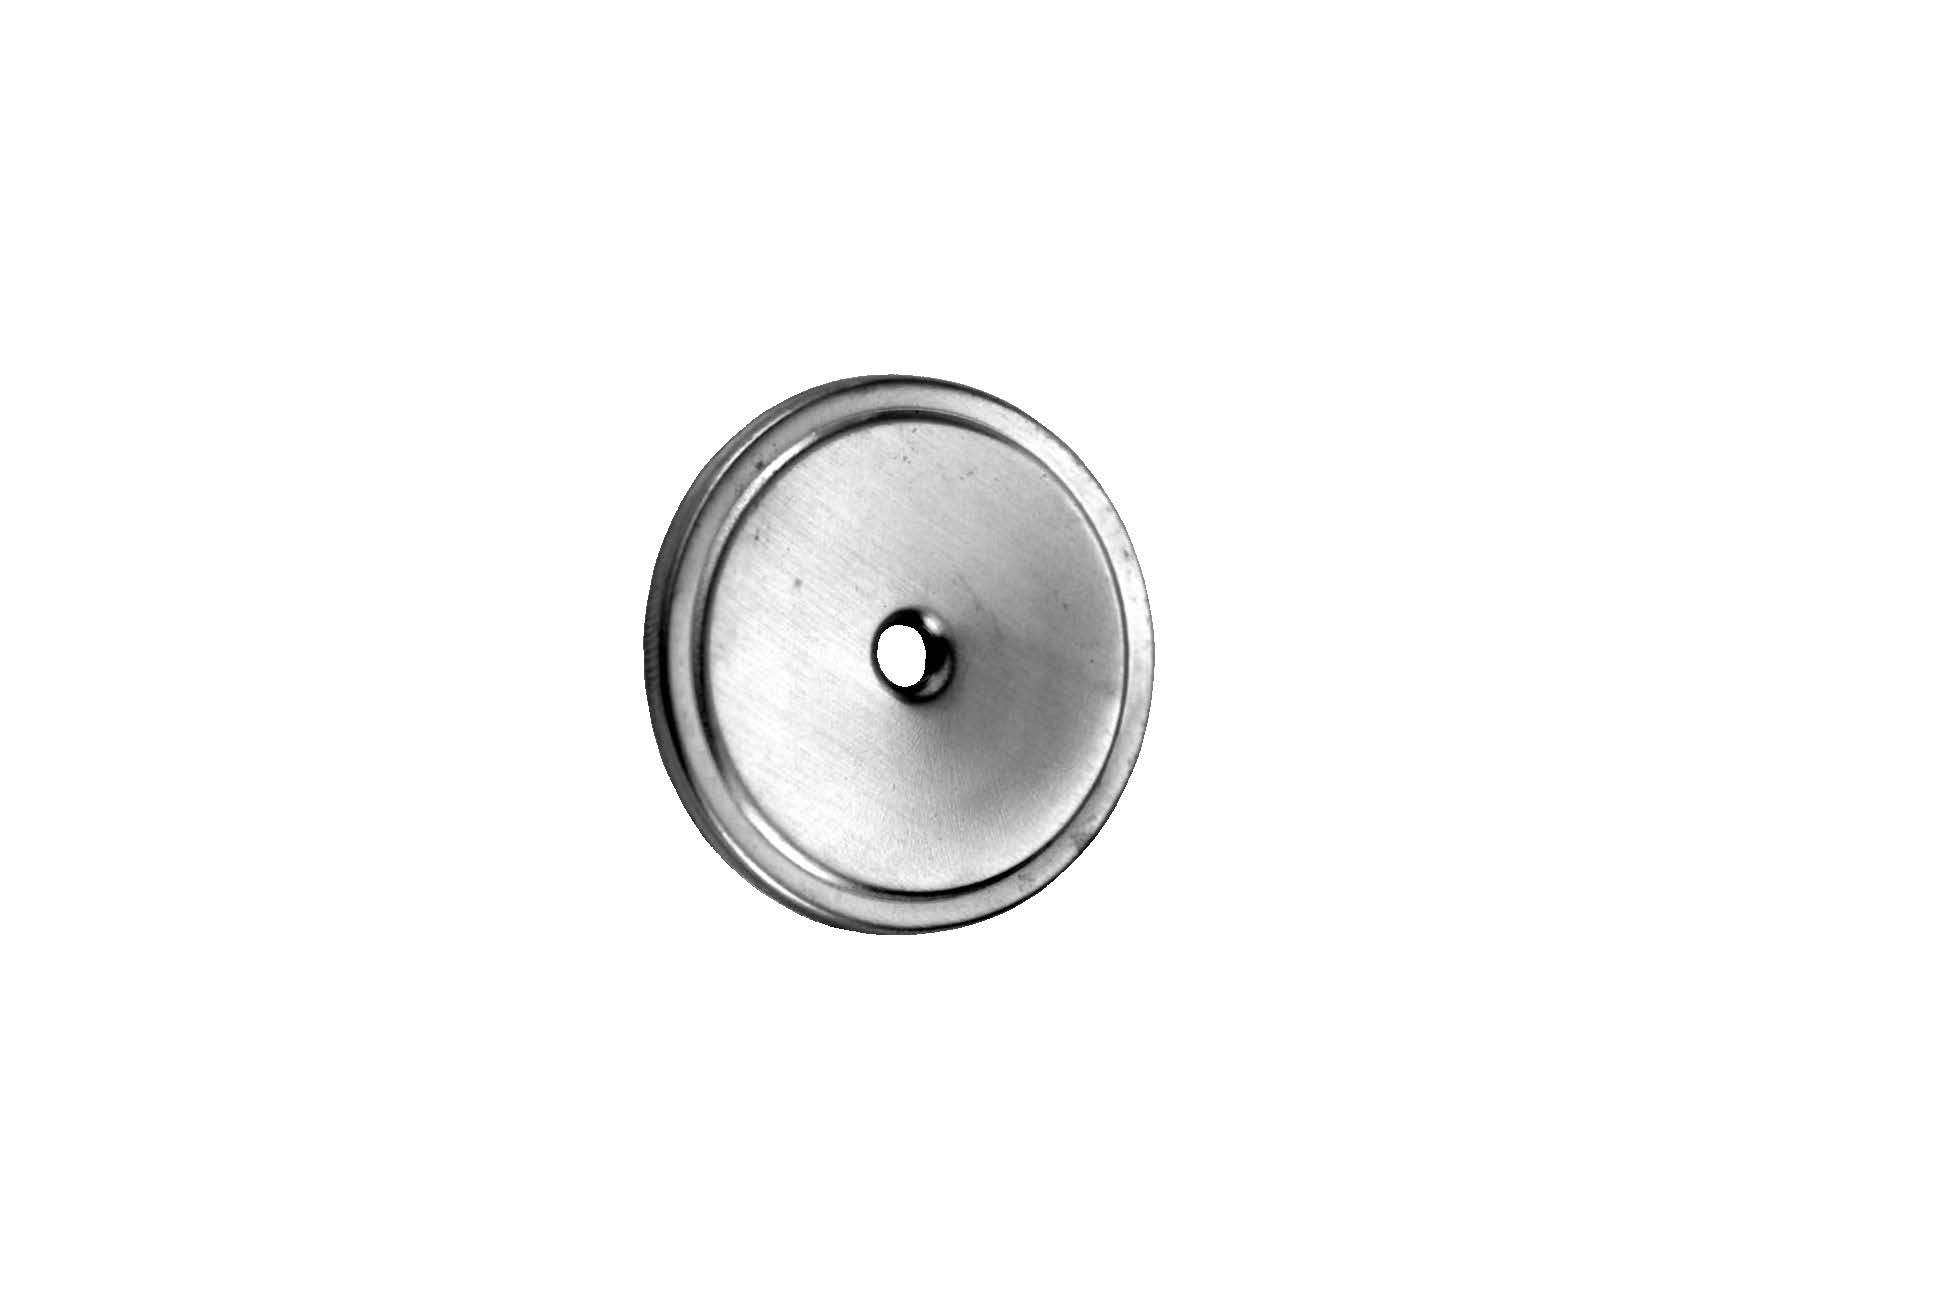 Don-Jo 57 Aluminum Cabinet Knob, Clear Coated Satin Nickel Plated, 1/8'' Projection, 1-1/2'' Knob Size (Pack of 10) by Don-Jo